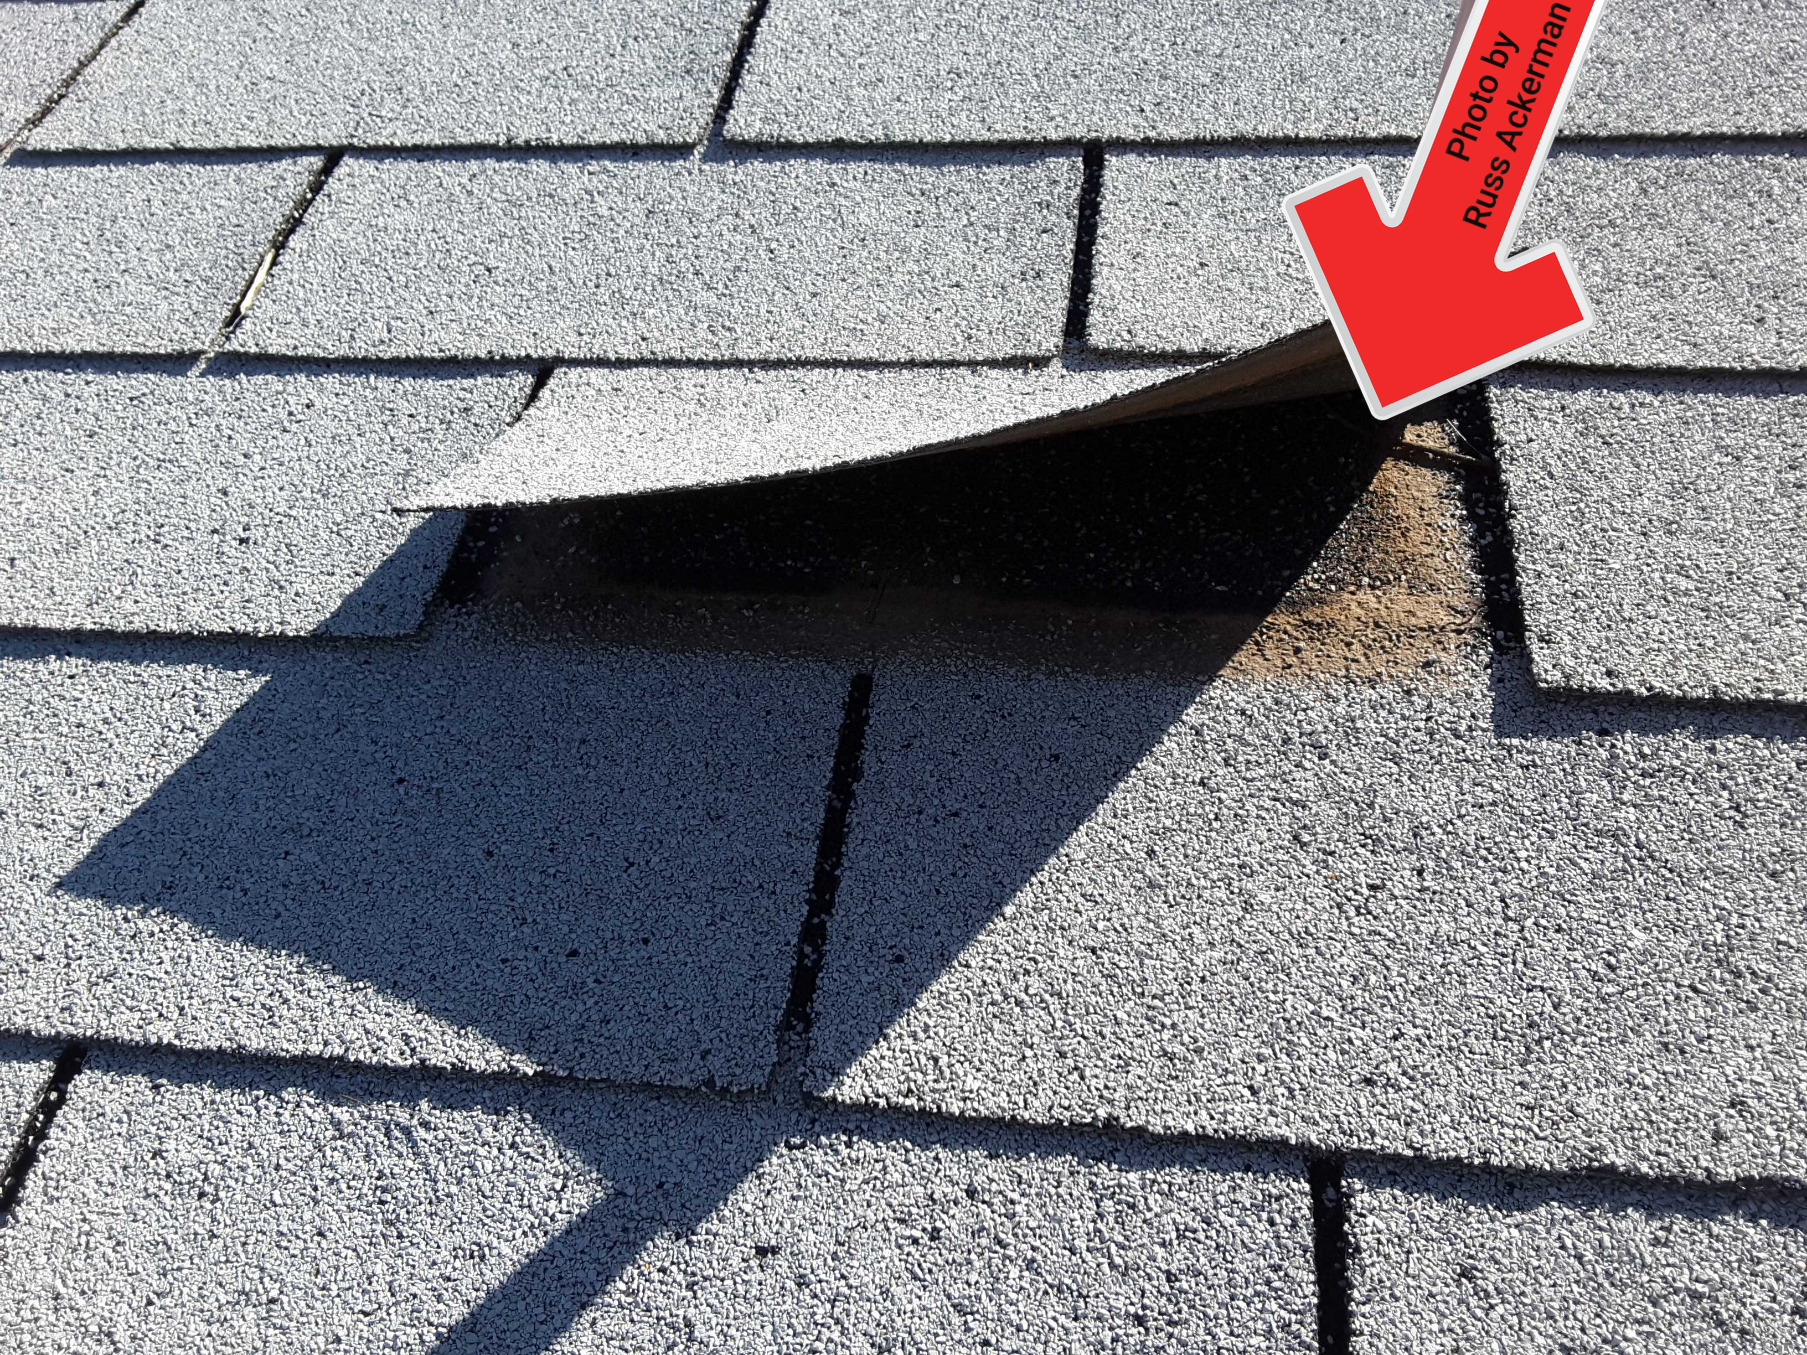 This older asphalt roof has failed bonding throughout the entire roof, bring in a big wind storm and you will start losing tabs and shingles.